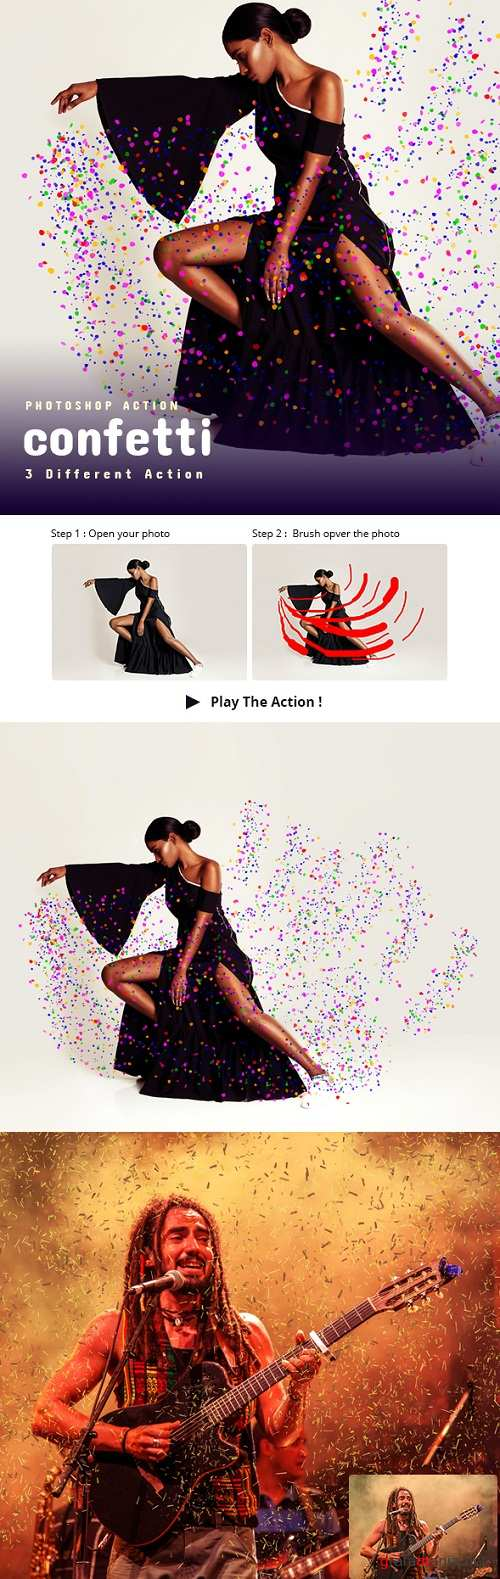 3 Confetti Photoshop Action 22825024